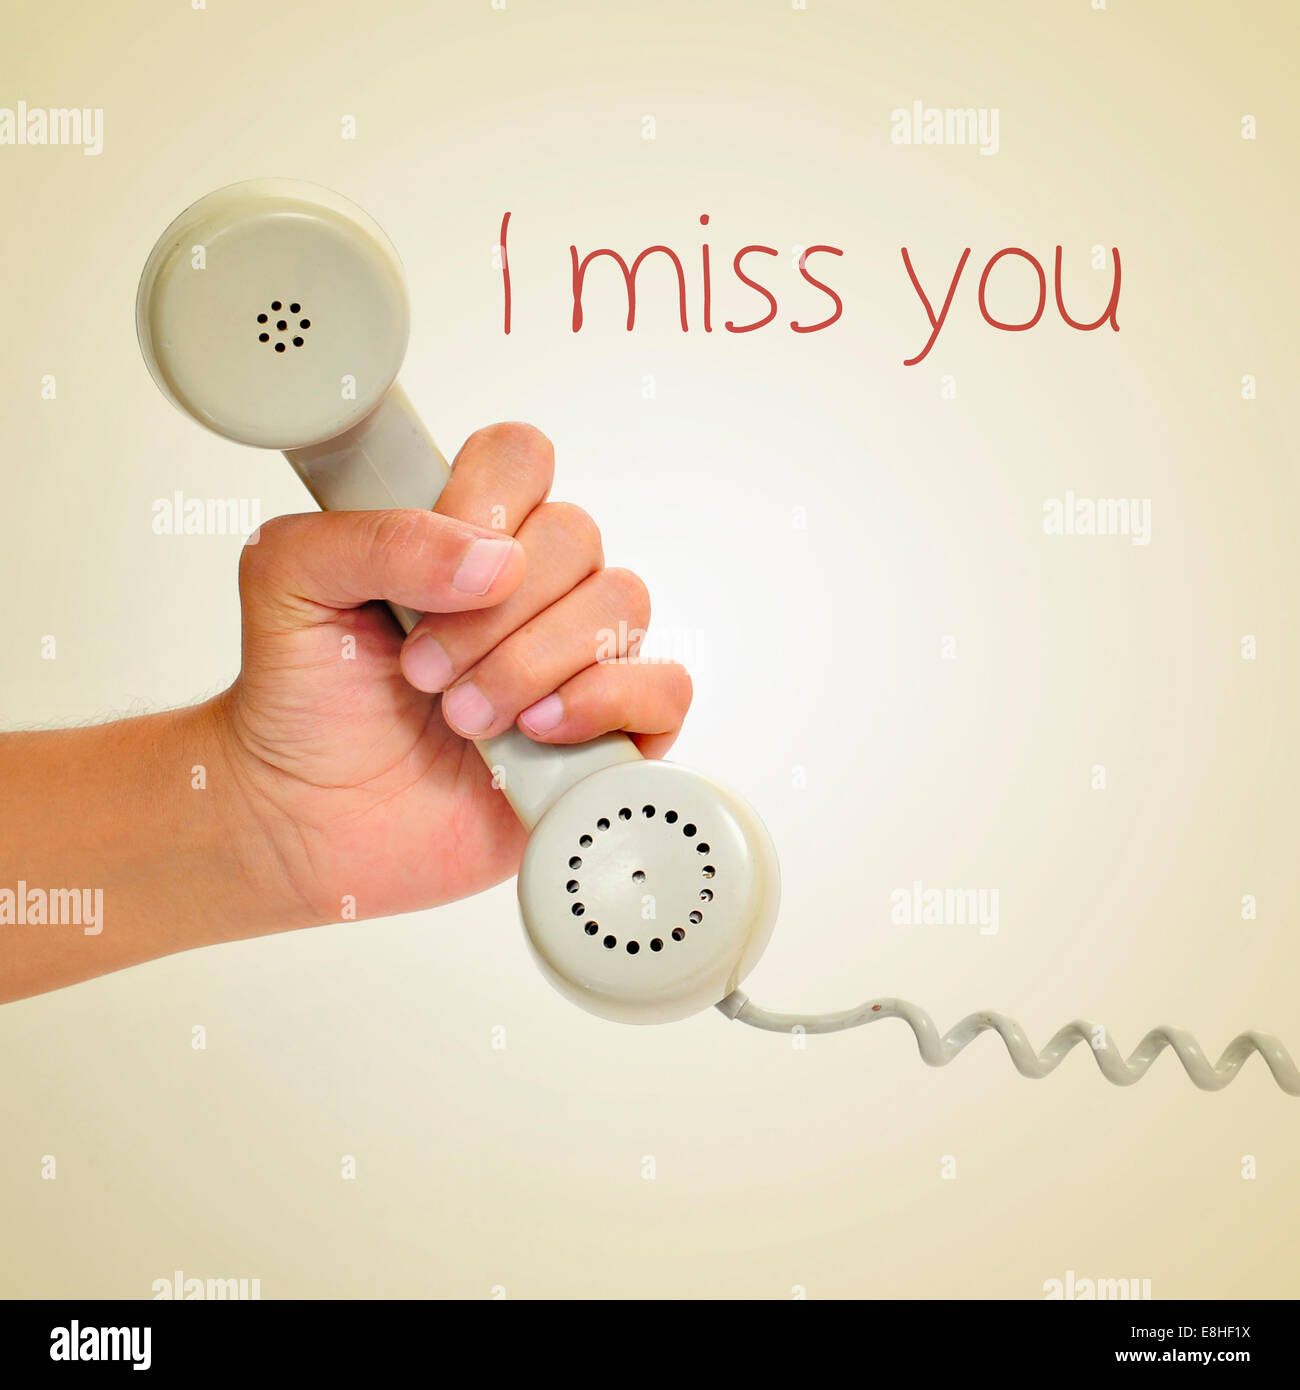 I Miss You Message Stock Photos & I Miss You Message Stock Images